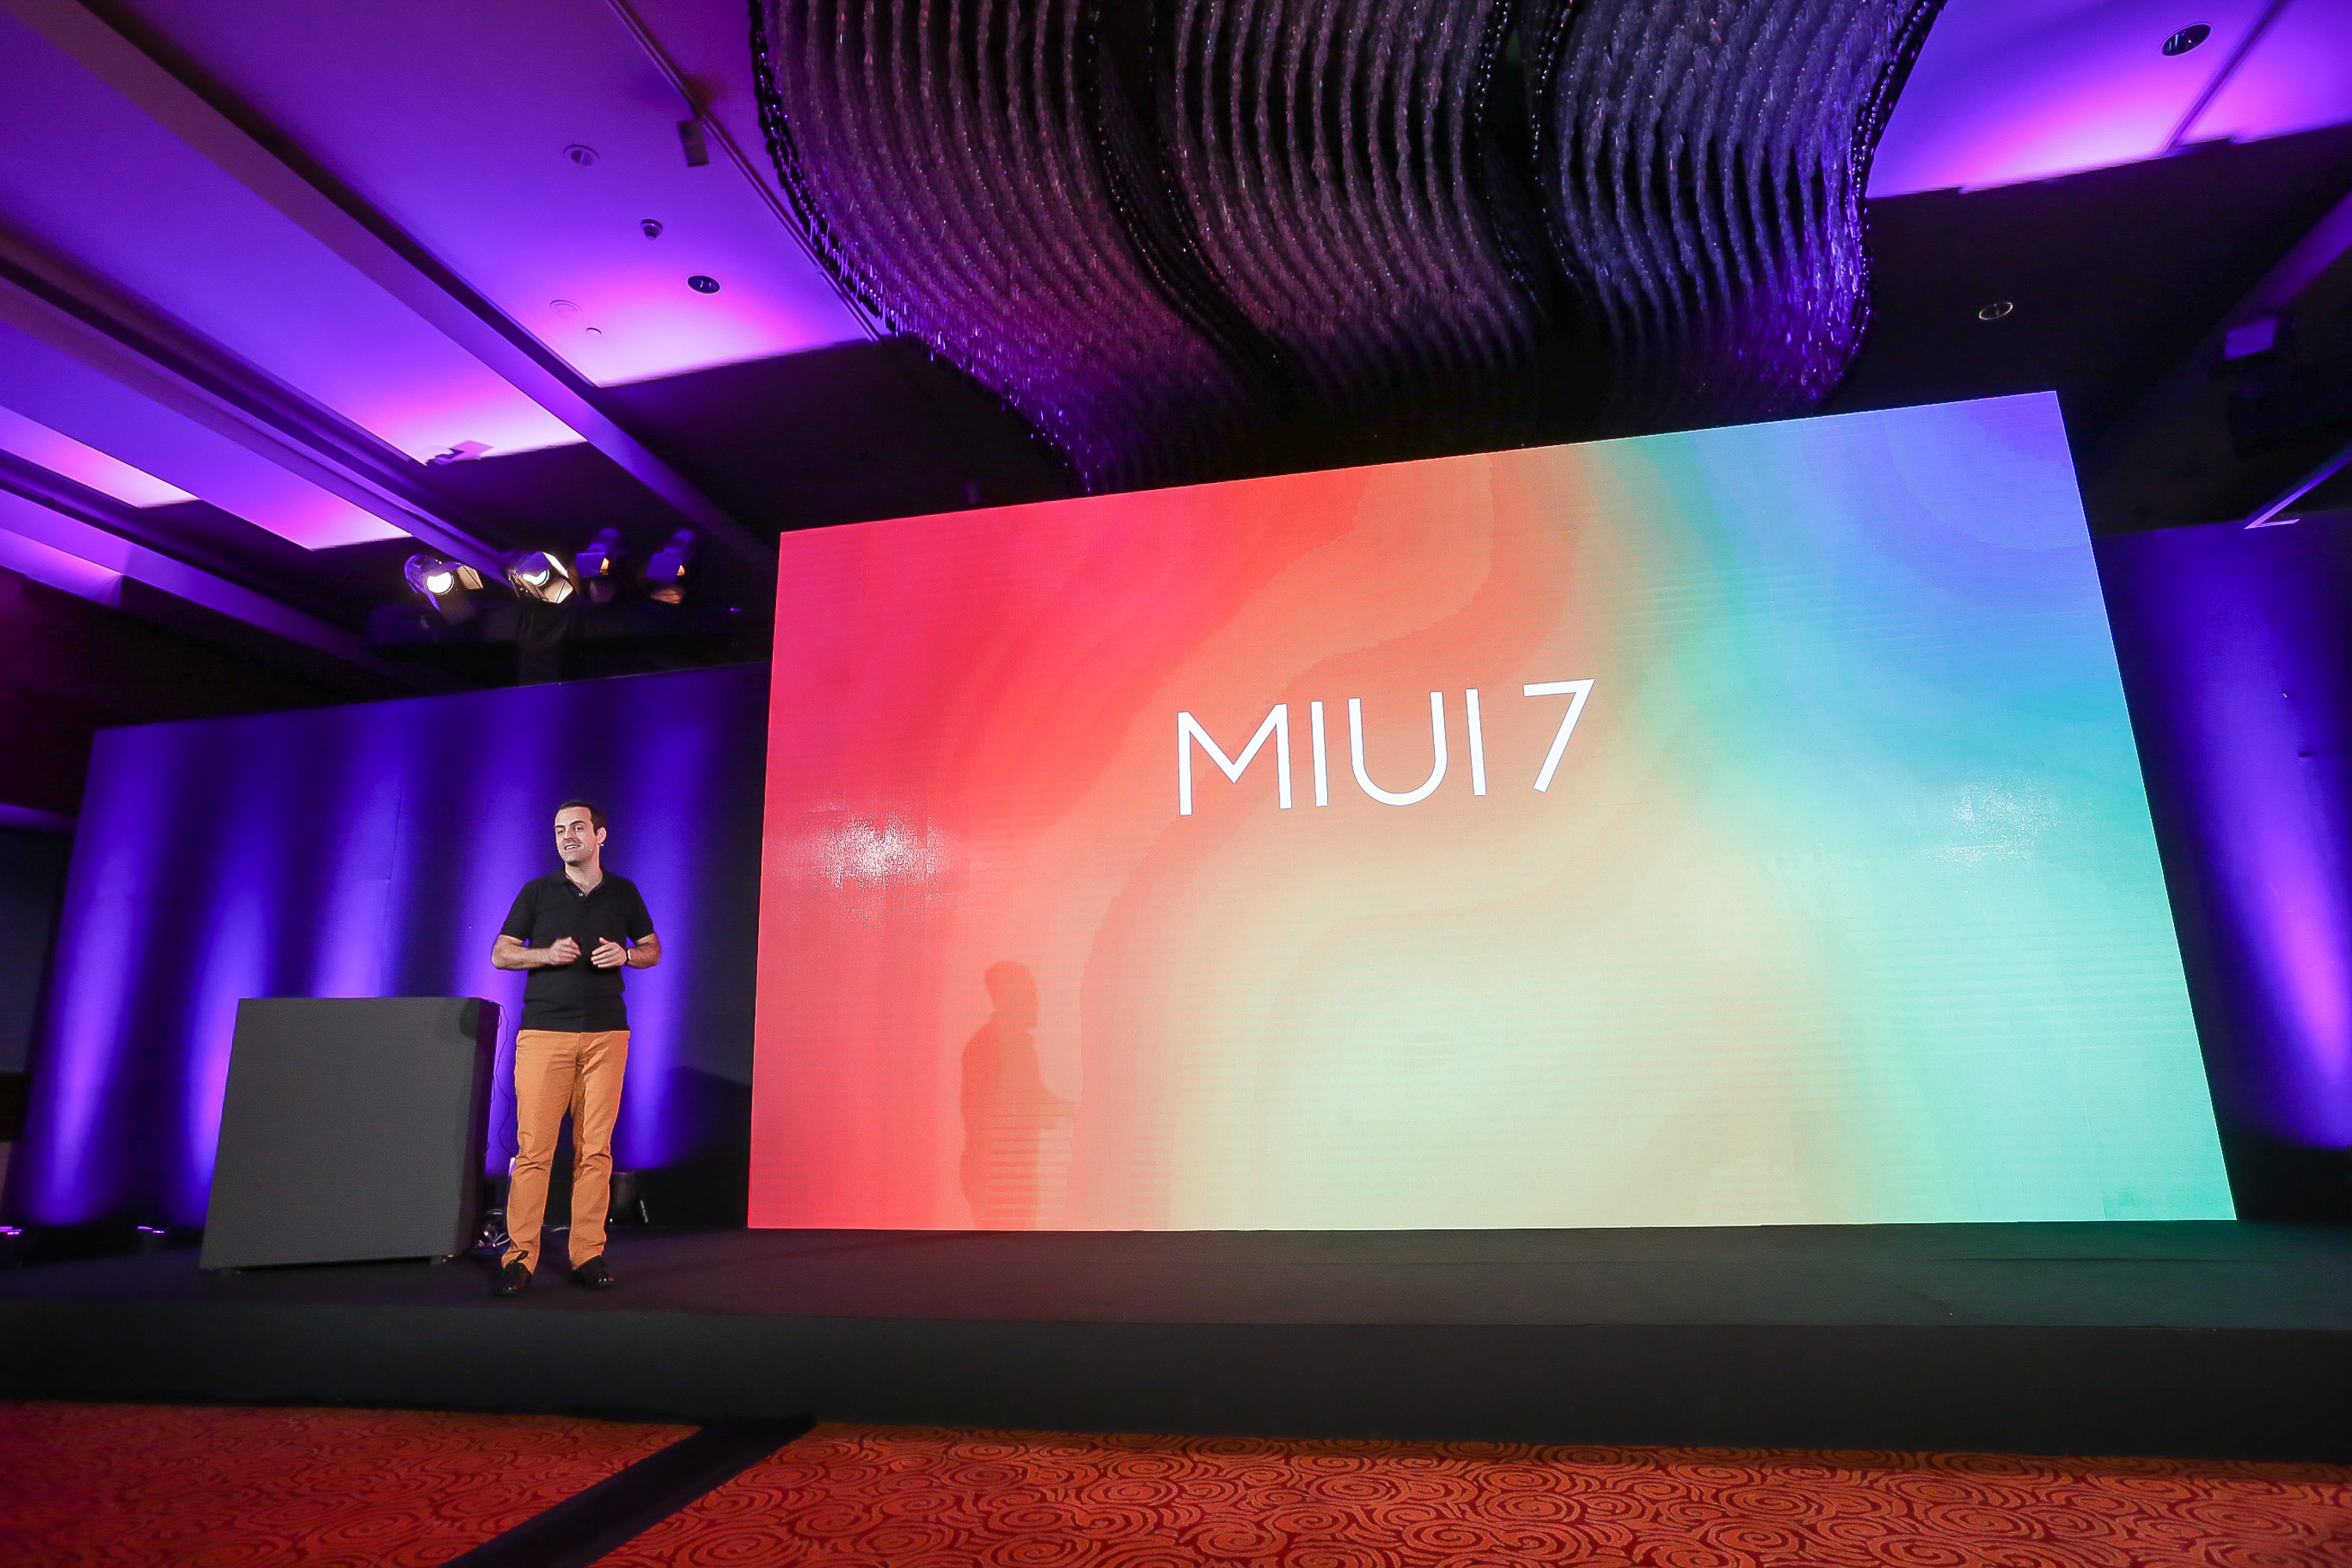 Hugo Barra, Vice President of Xiaomi Global talking about features of MIUI 7.